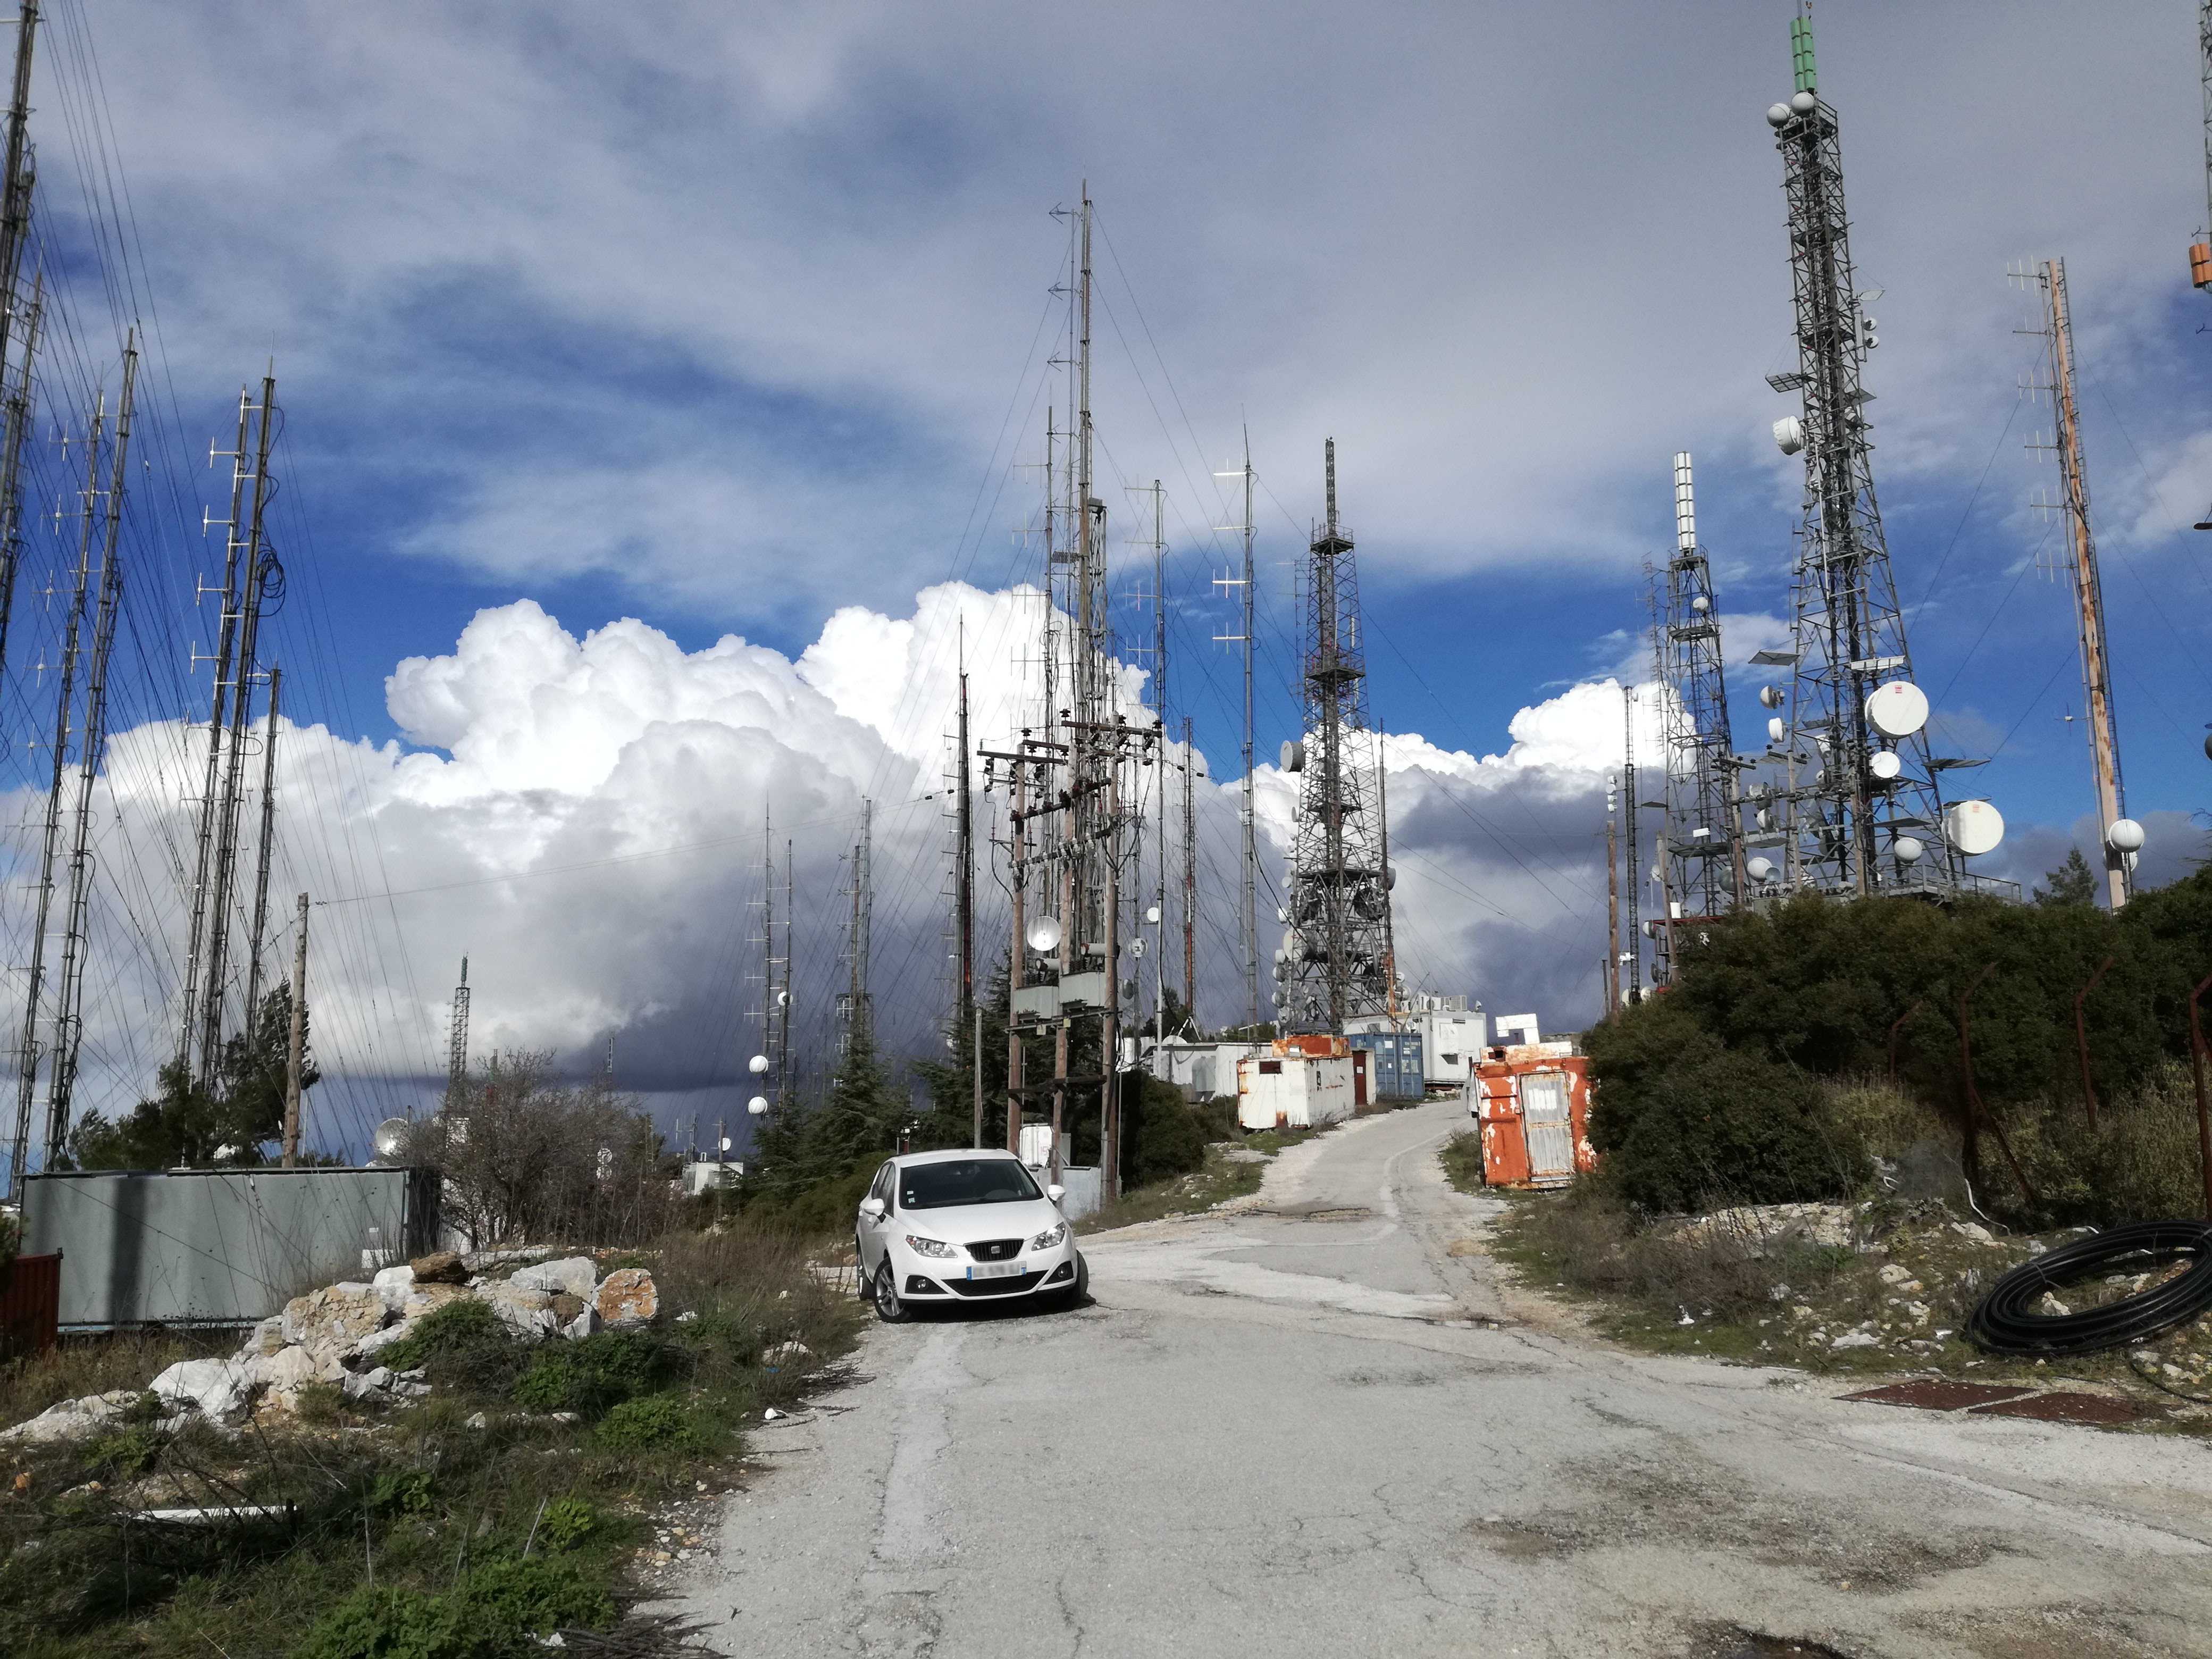 Greece - FM / TV Antennas & Cell Tower - Hymettus ( Athens )